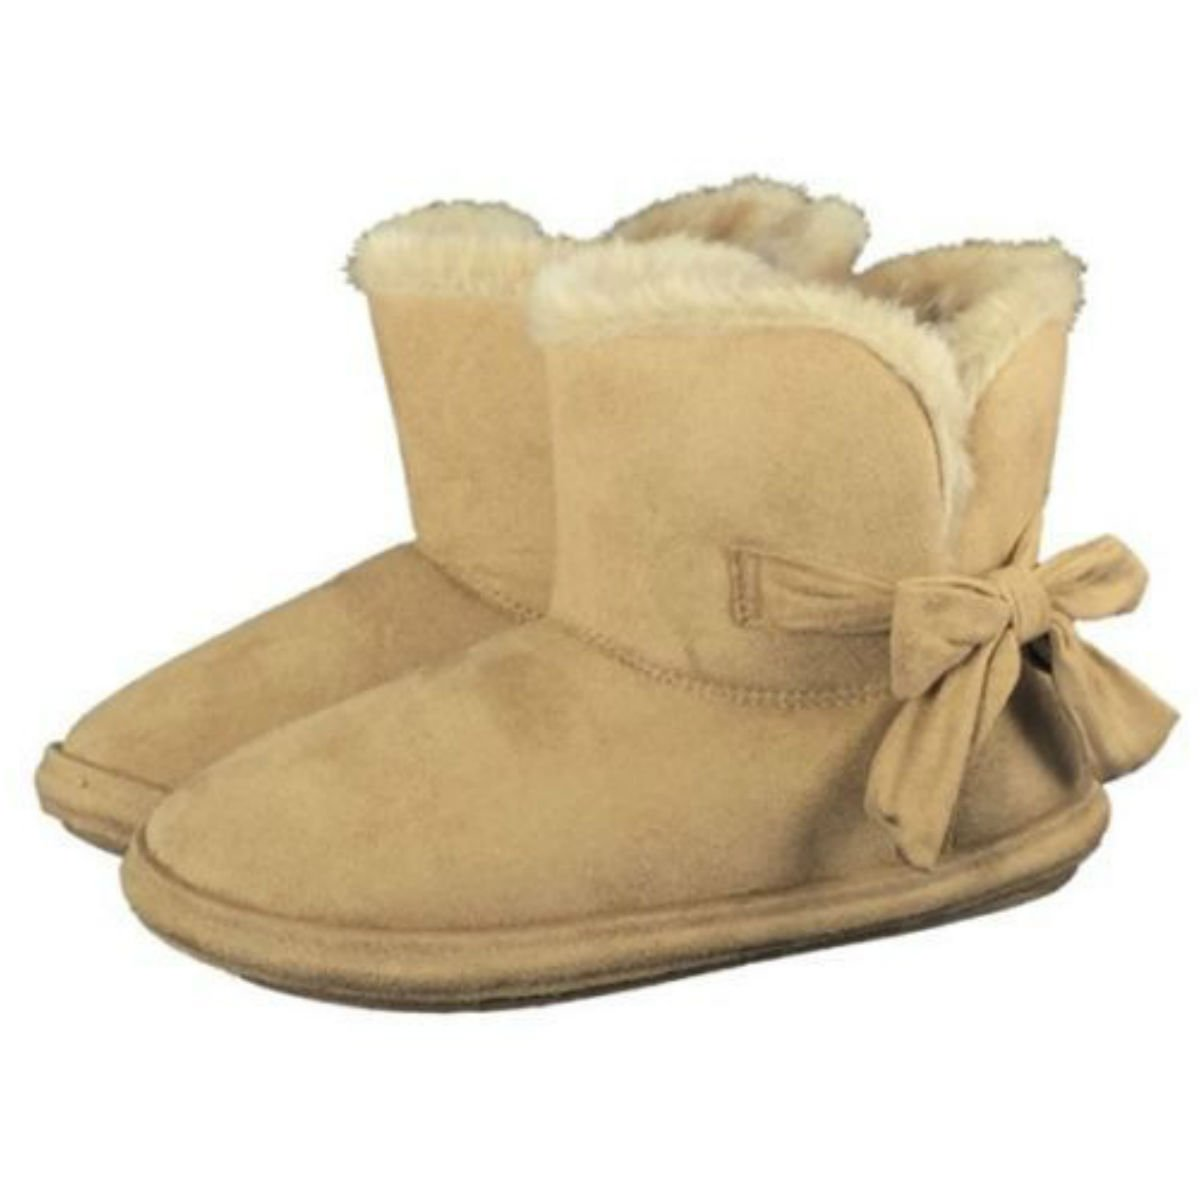 775727e56952 LADIES CHILTERN FUR LINING FUR COLLAR ANKLE BOOT WARM LINED WINTER BOOT  SLIPPER BY JO AND JOE SIZES 3-8 sand 6  Amazon.co.uk  Shoes   Bags